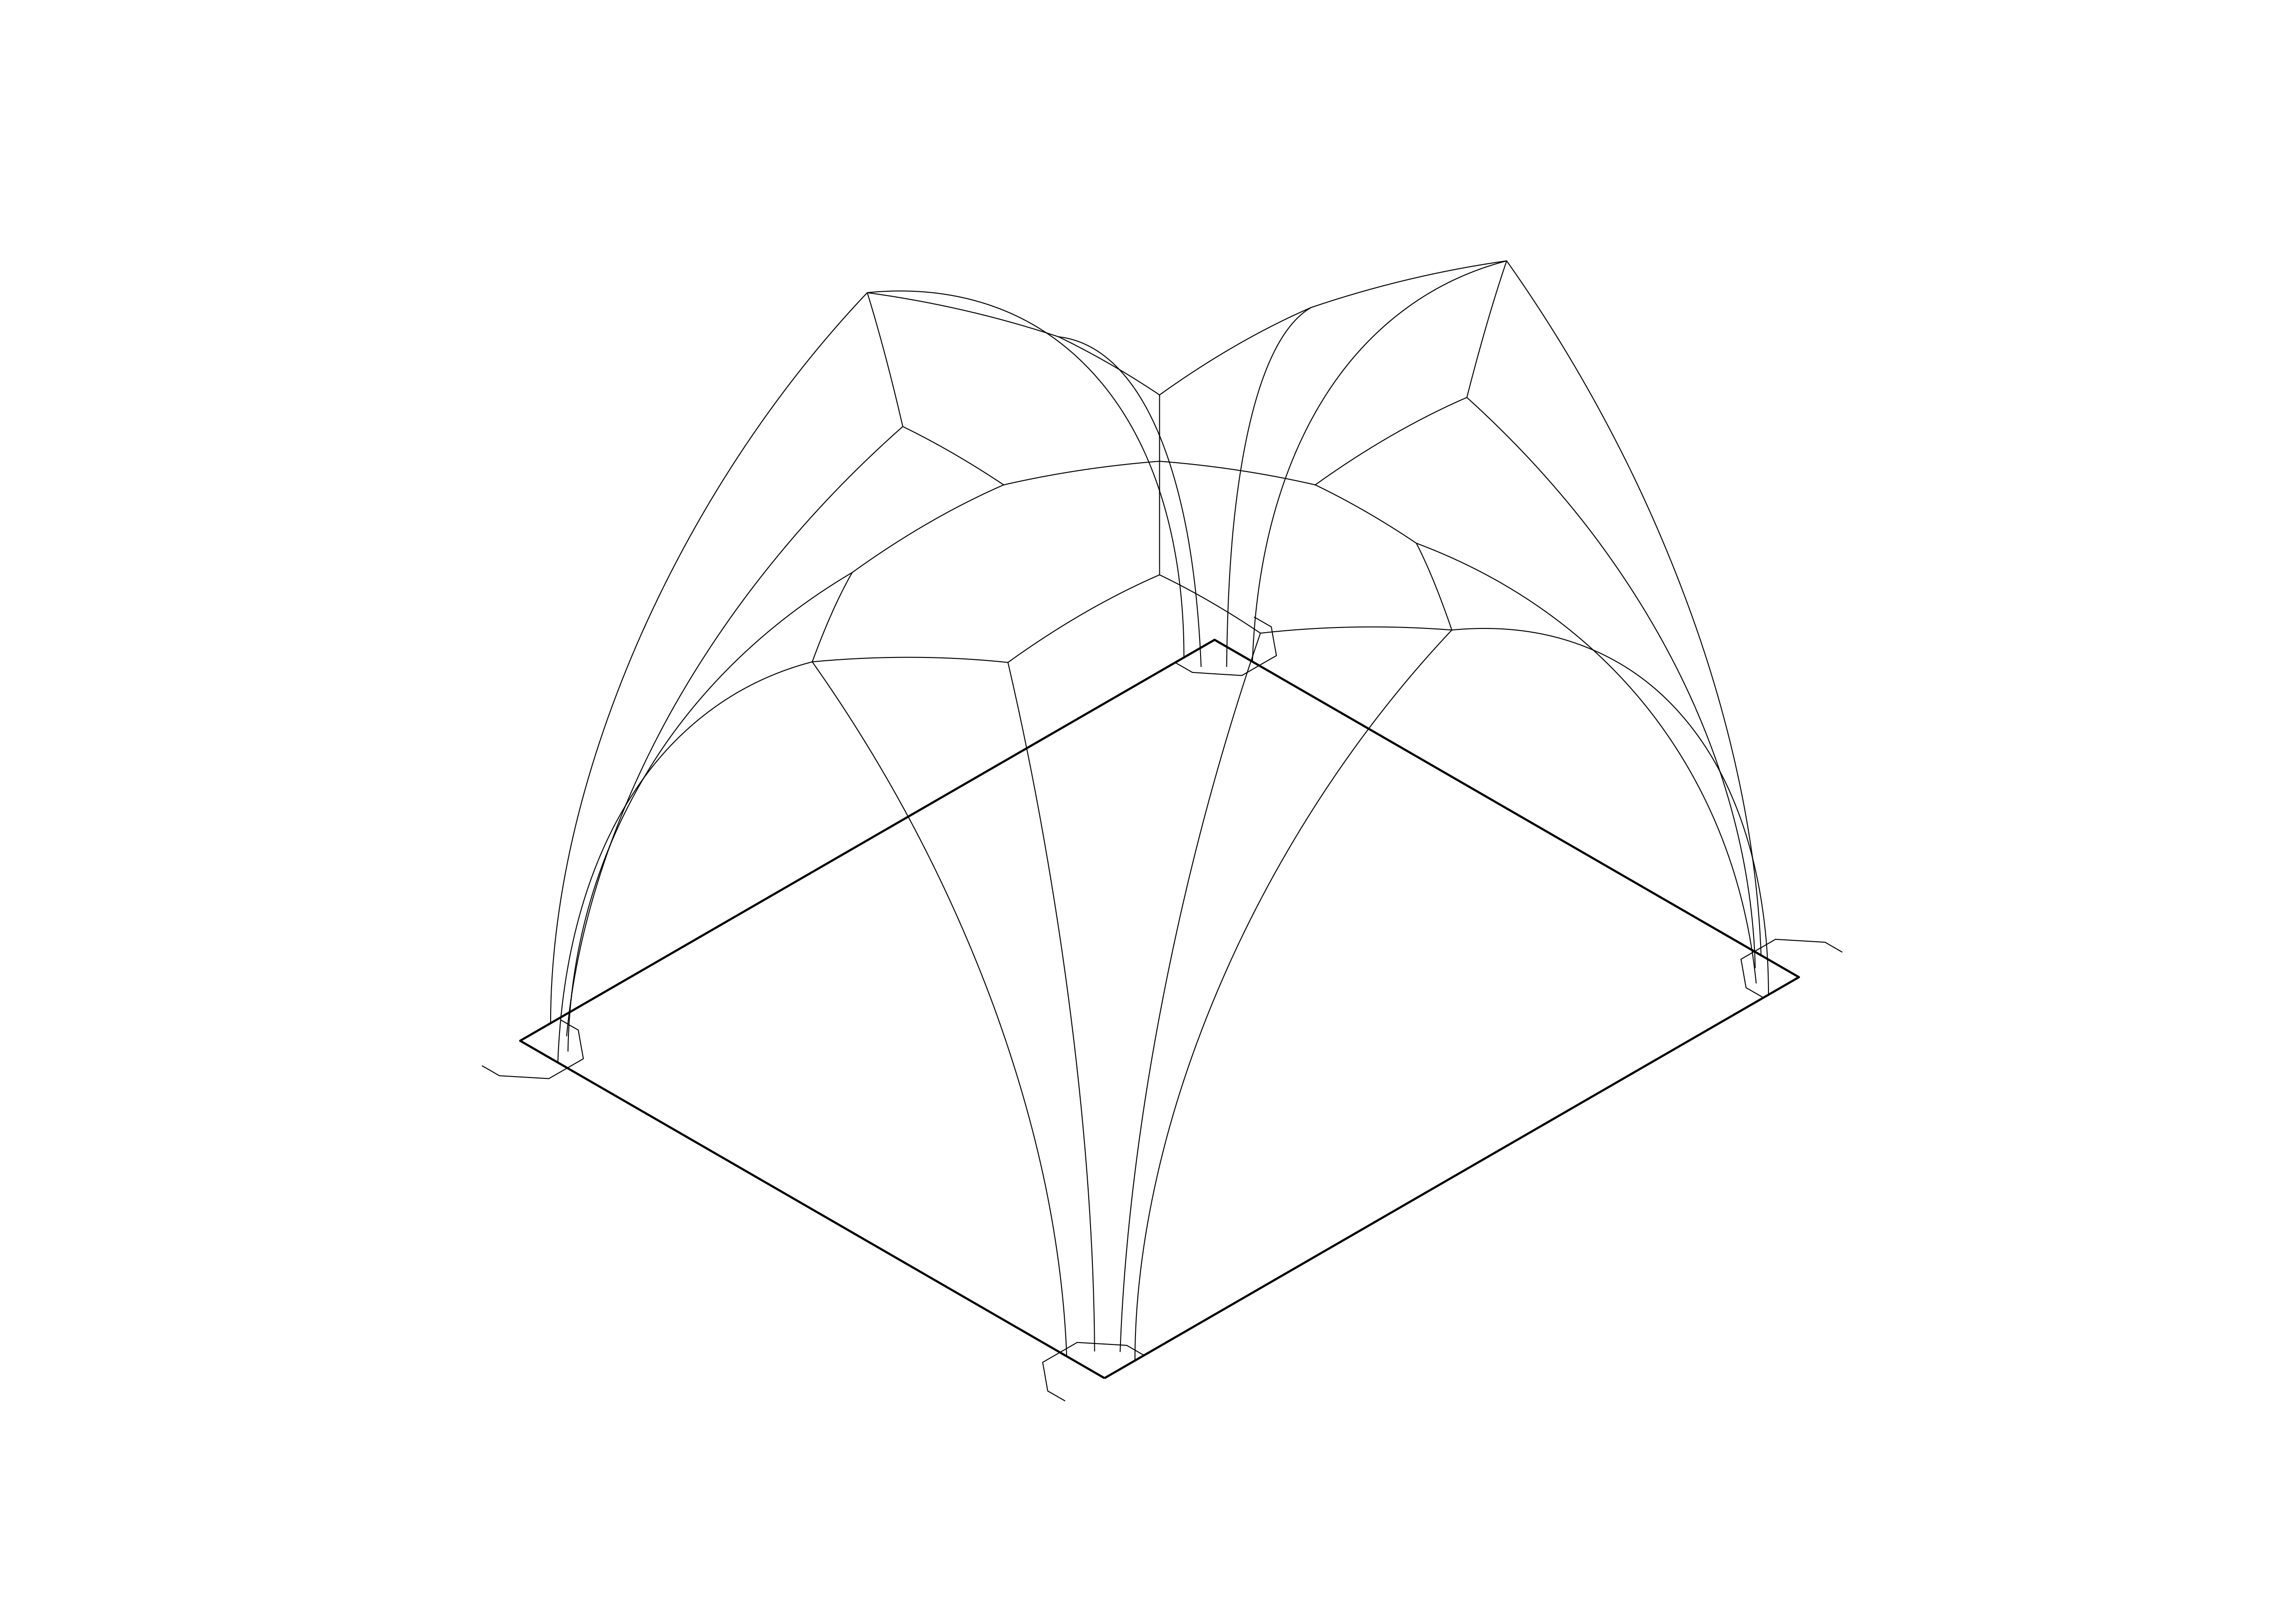 Hypothetical geometry of bay N2 in three dimensions